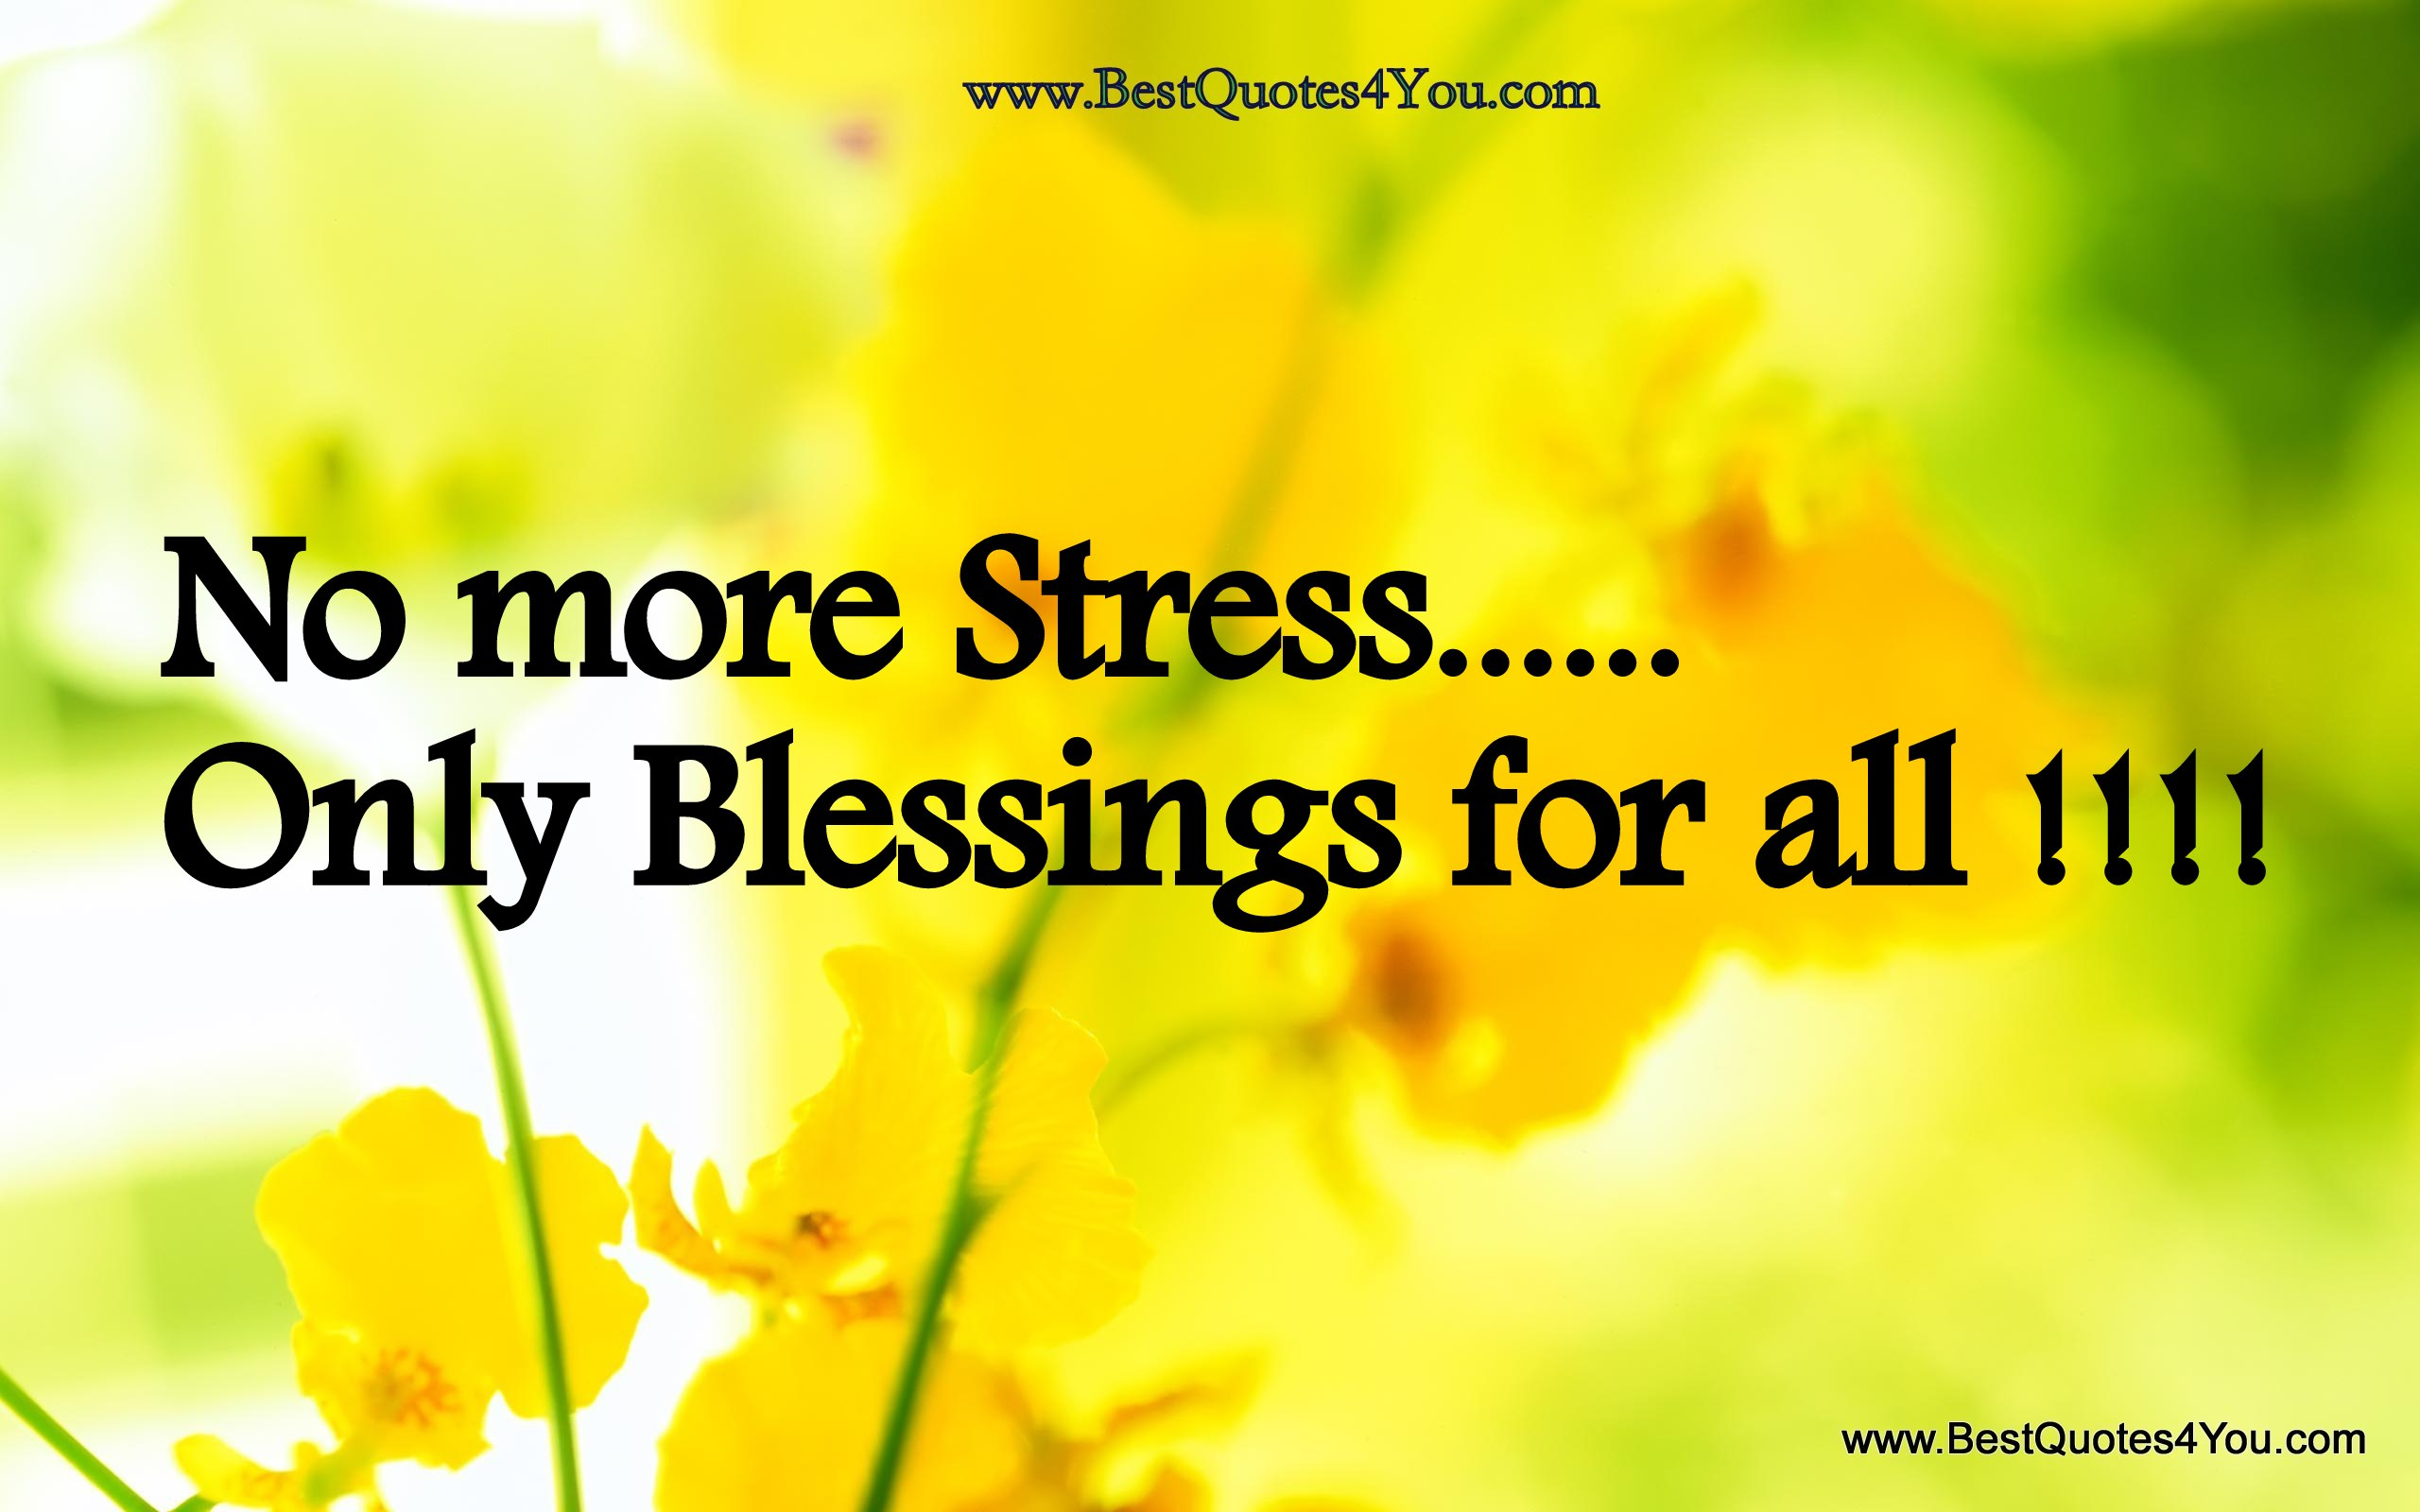 Blessings From God Quotes. QuotesGram